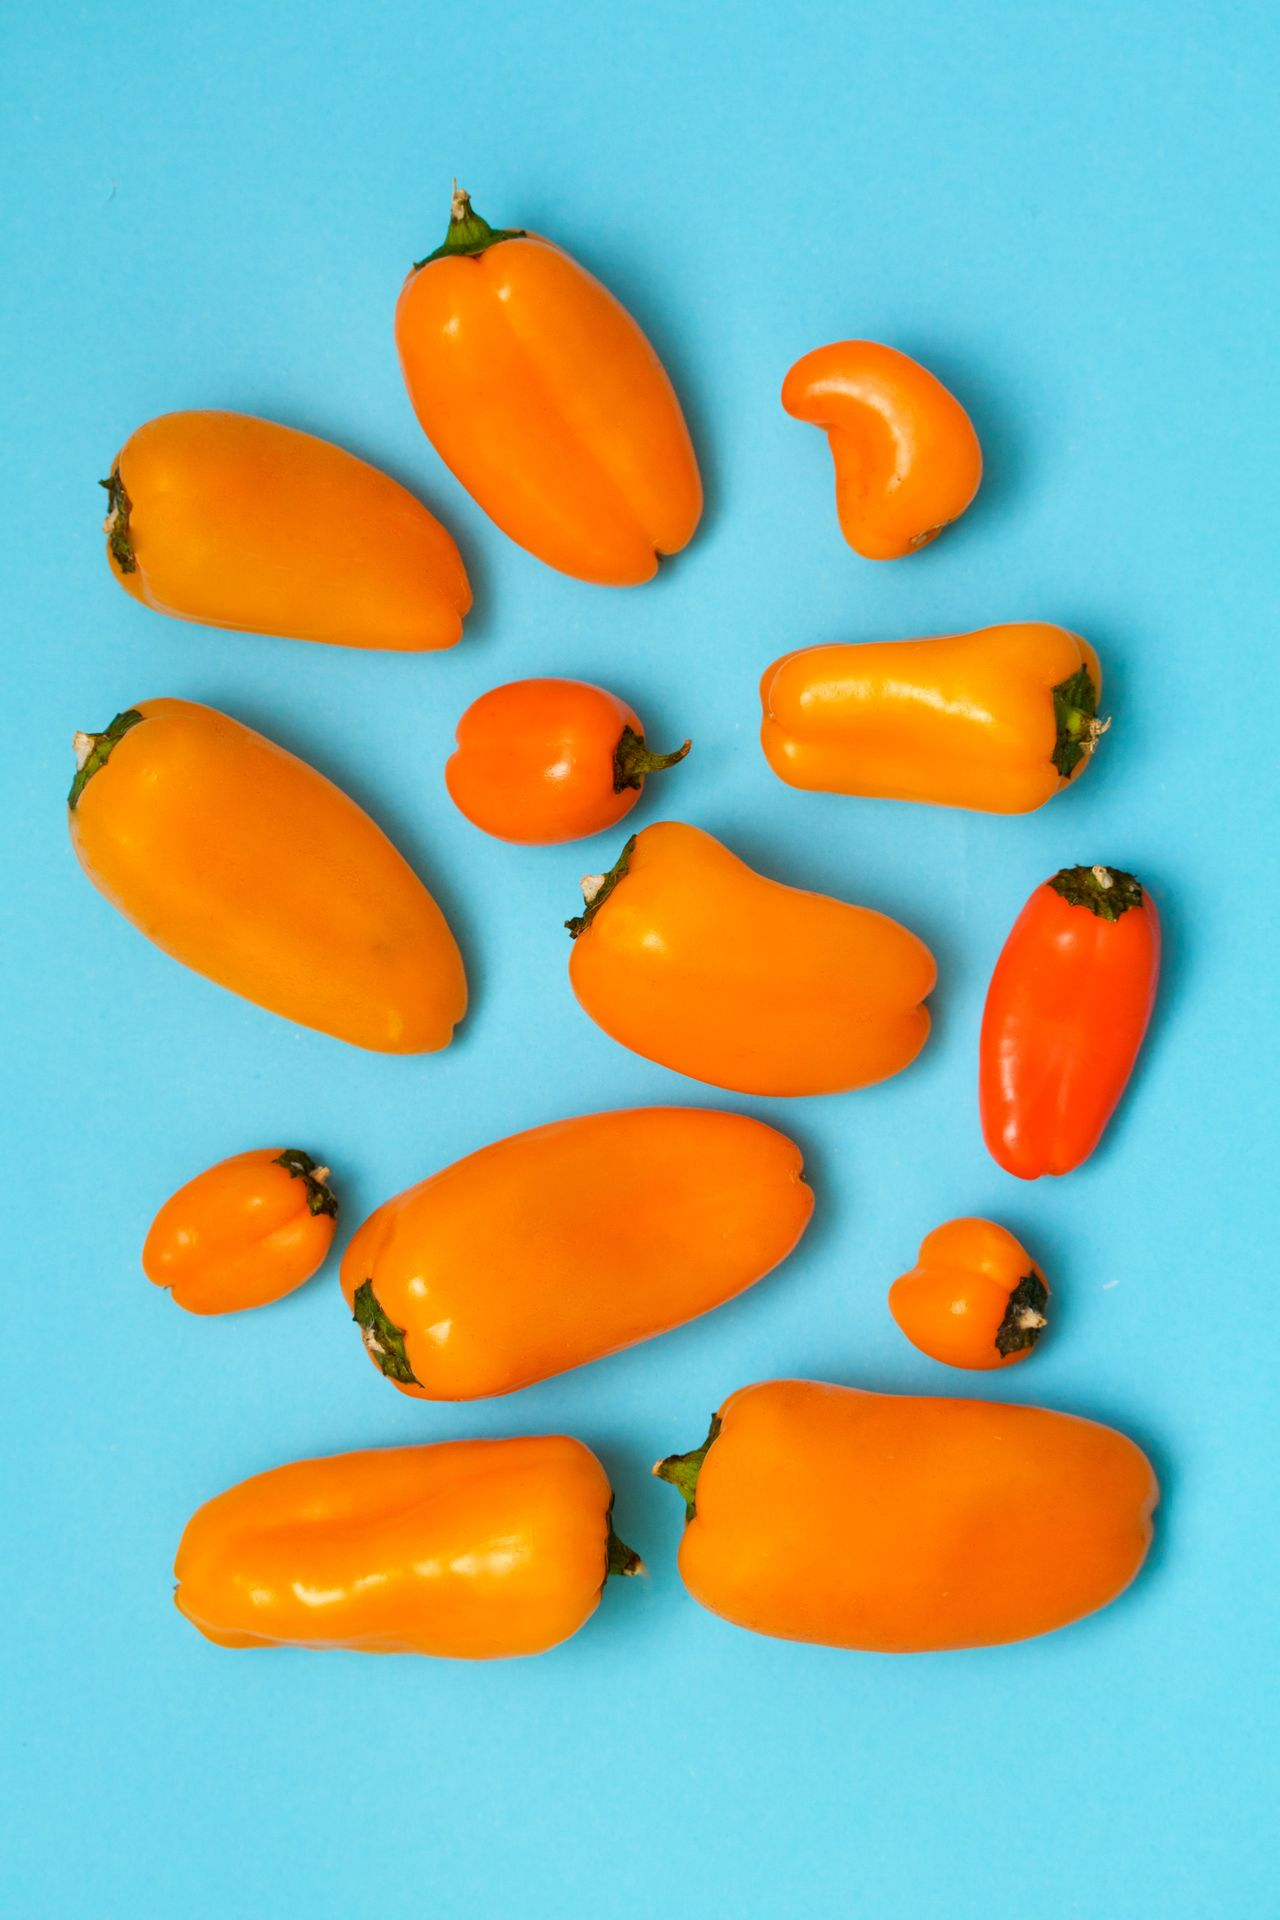 orange peppers on blue background Arrangement Blue Background Close-up Food Food And Drink Freshness Healthy Eating No People Orange Pepper Red Bell Pepper Studio Shot Vegetable Yellow Bell Pepper